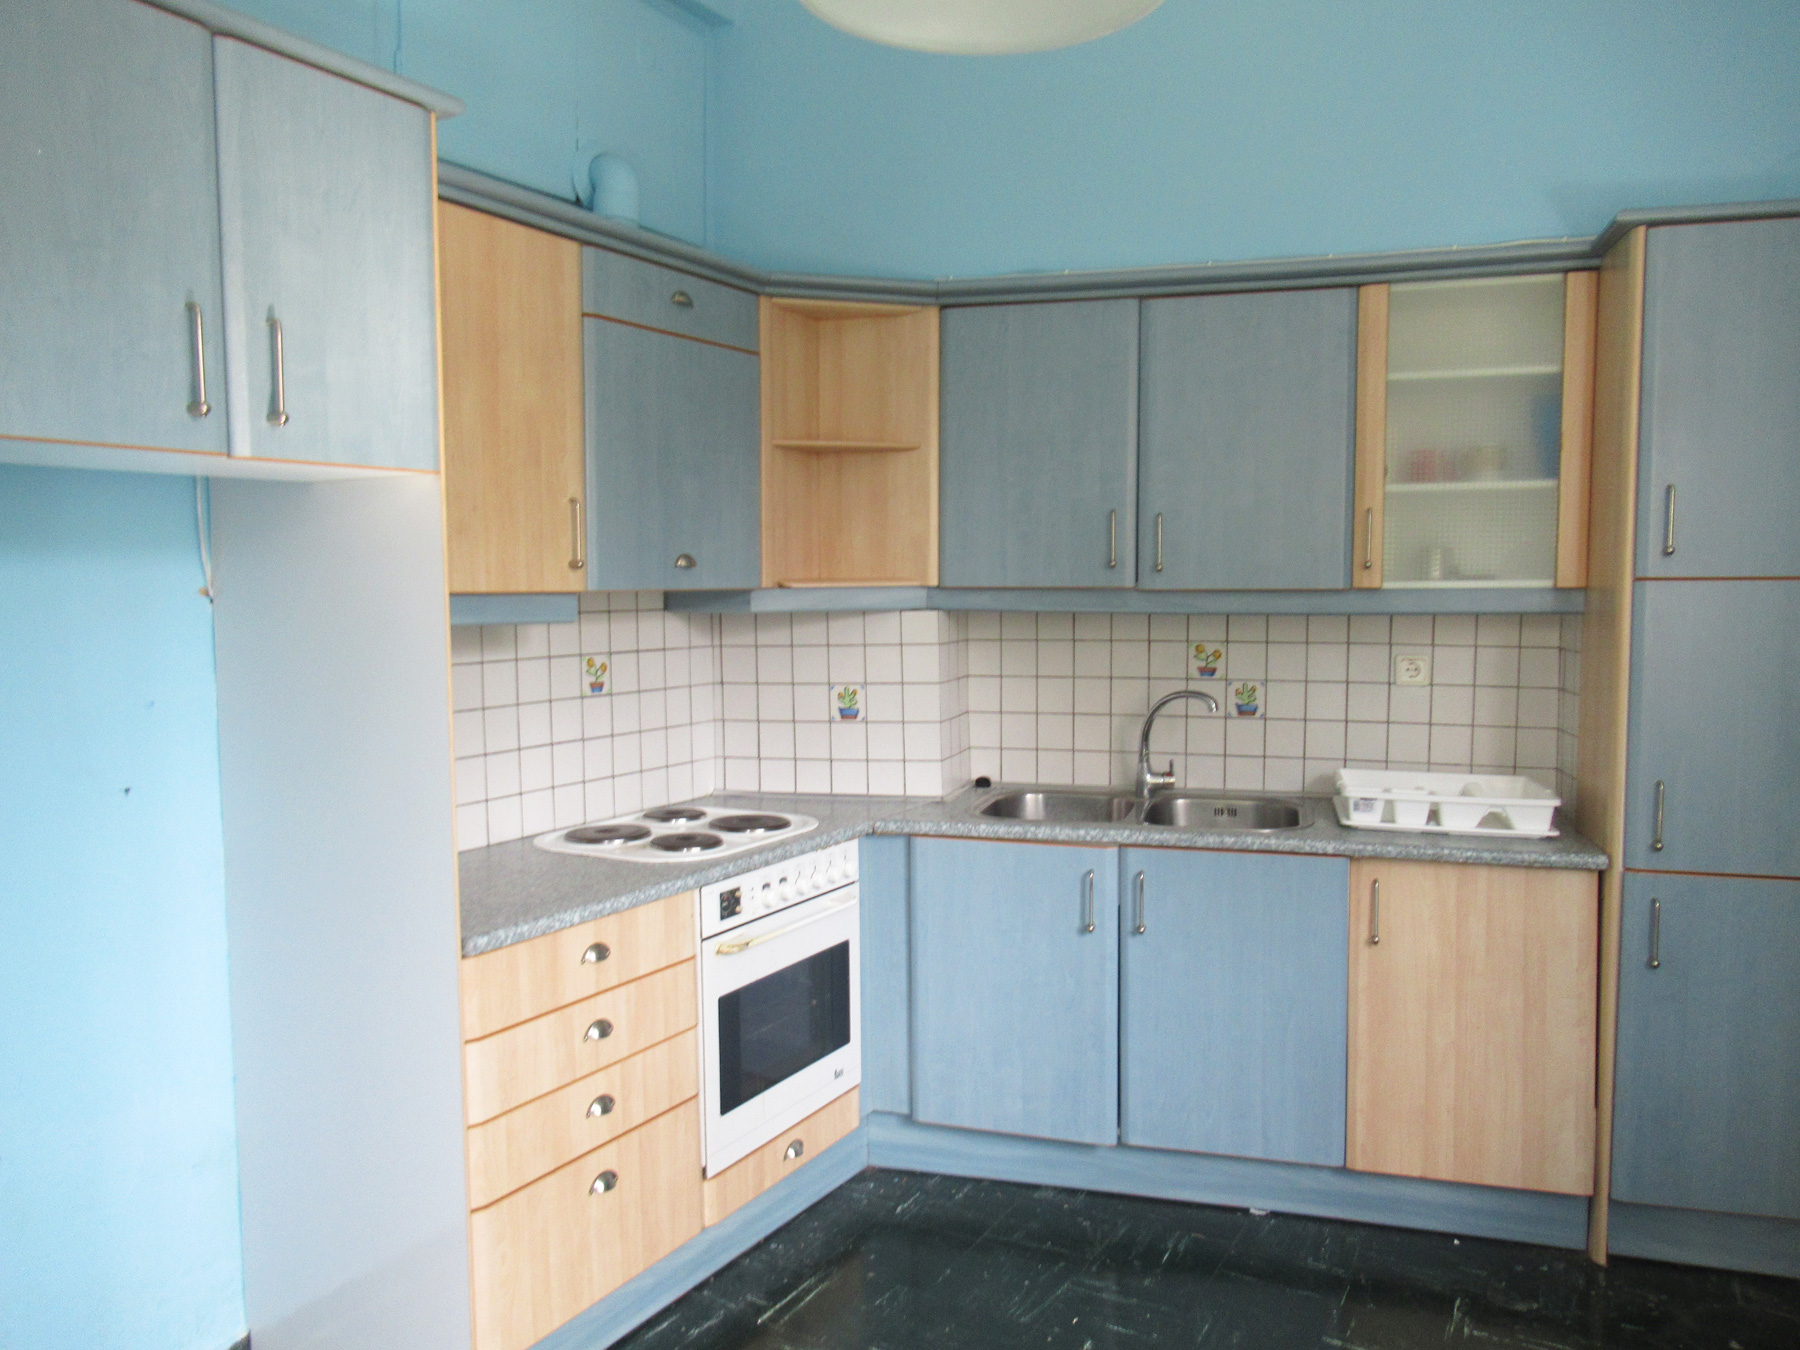 For rent sunny 1 bedroom apartment of 50 sq.m. on the 1st floor in the center of Ioannina.